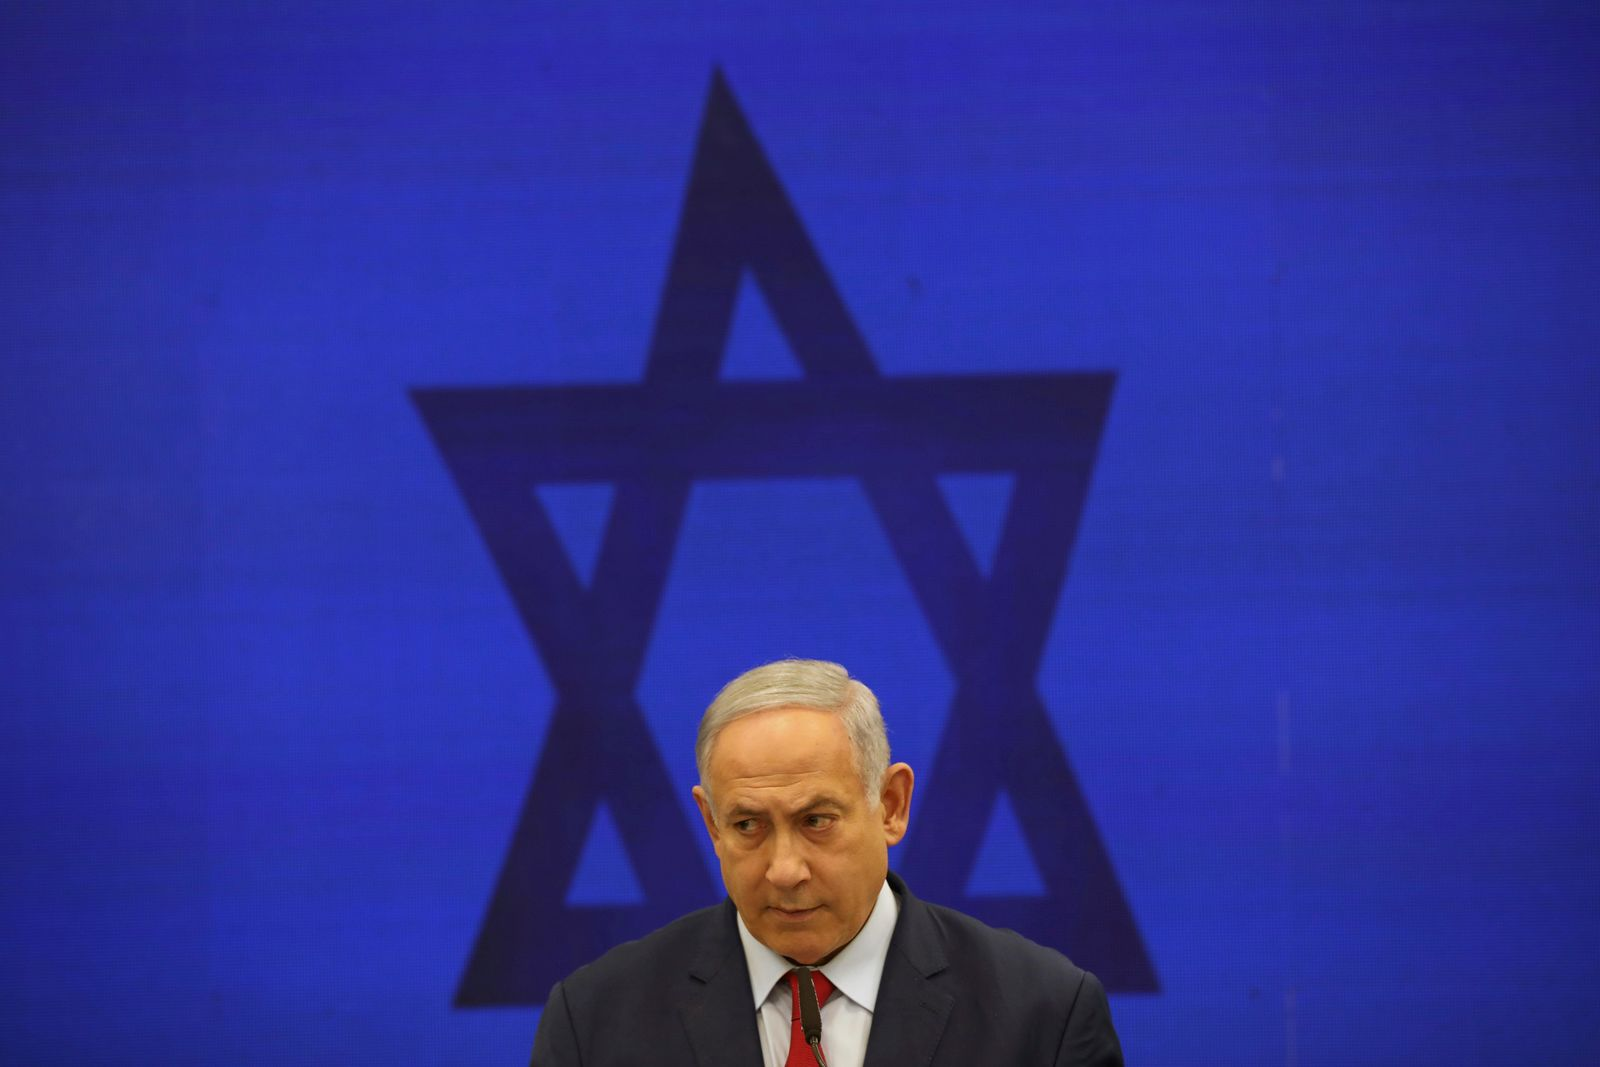 FILE - In this Sept. 10, 2019 file photo, Israeli Prime Minister Benjamin Netanyahu, speaks during a press conference in Tel Aviv, Israel. (AP Photo/Oded Balilty, File)